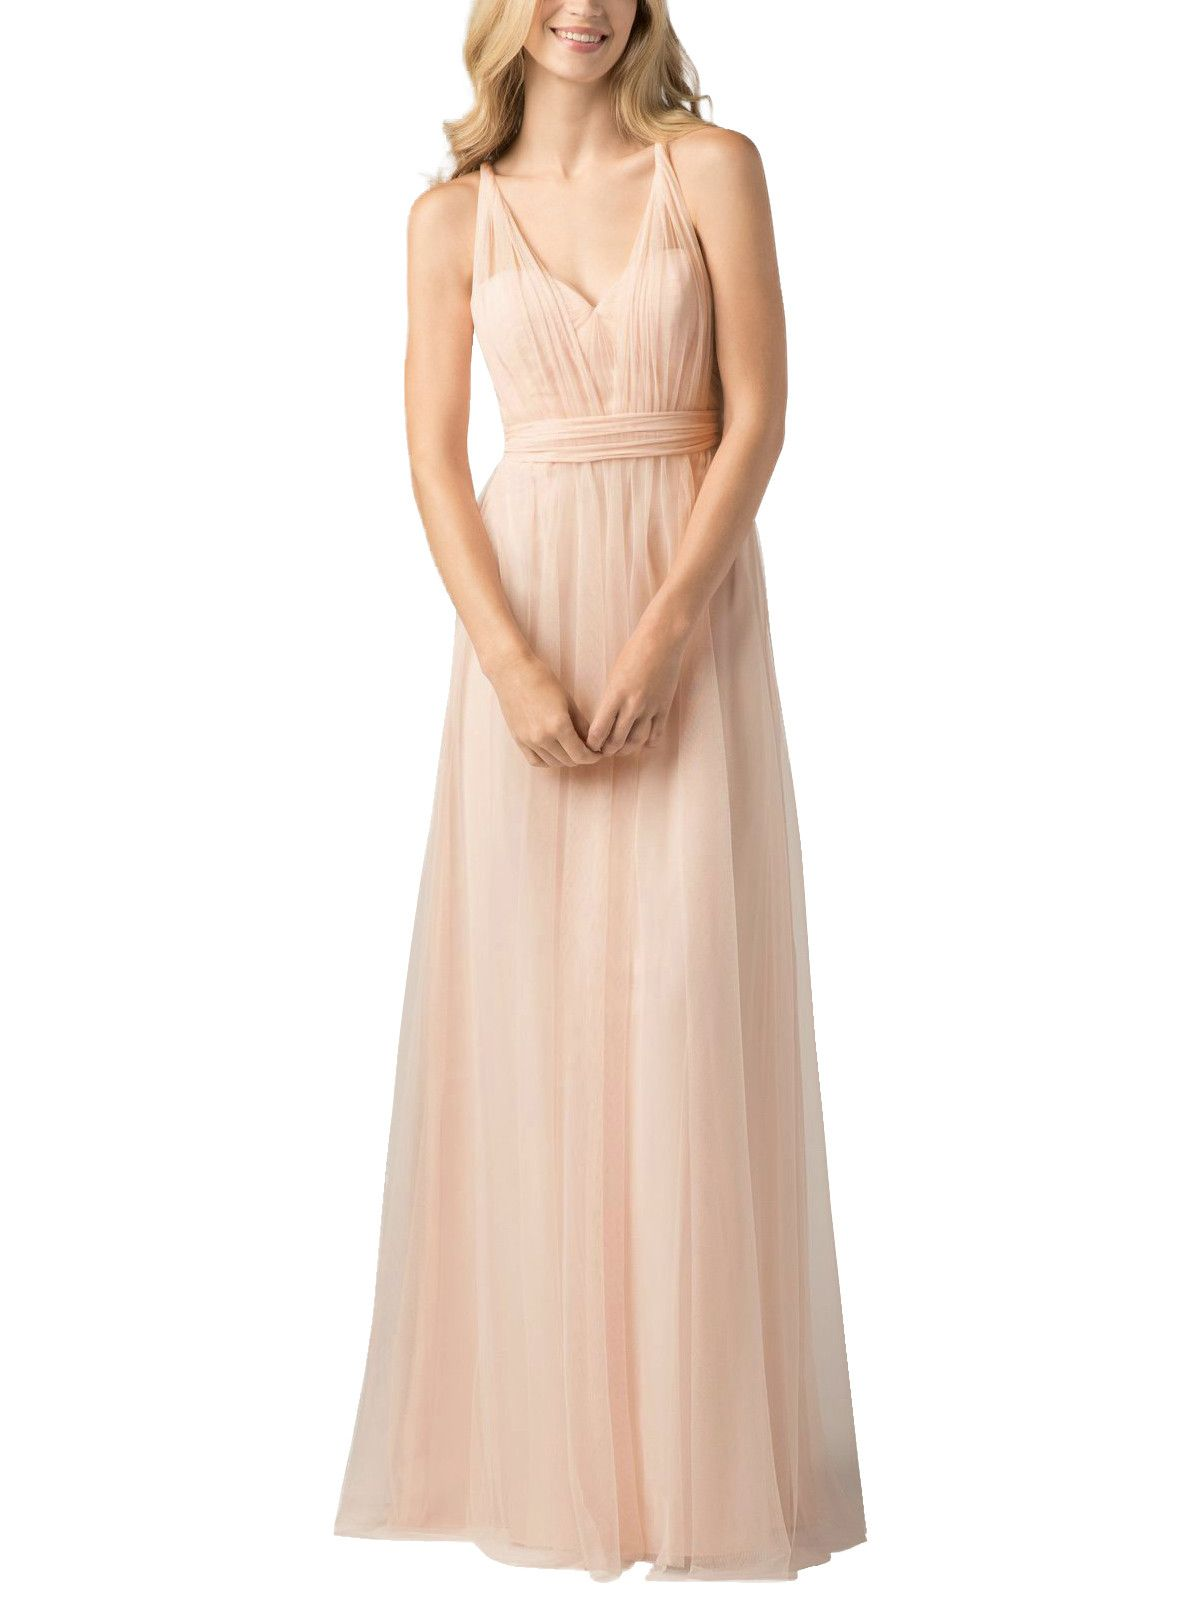 Wtoo By Watters Style 852i Convertible Blush Bridesmaid Dresses Watters Bridesmaid Dresses Blush Pink Bridesmaid Dresses